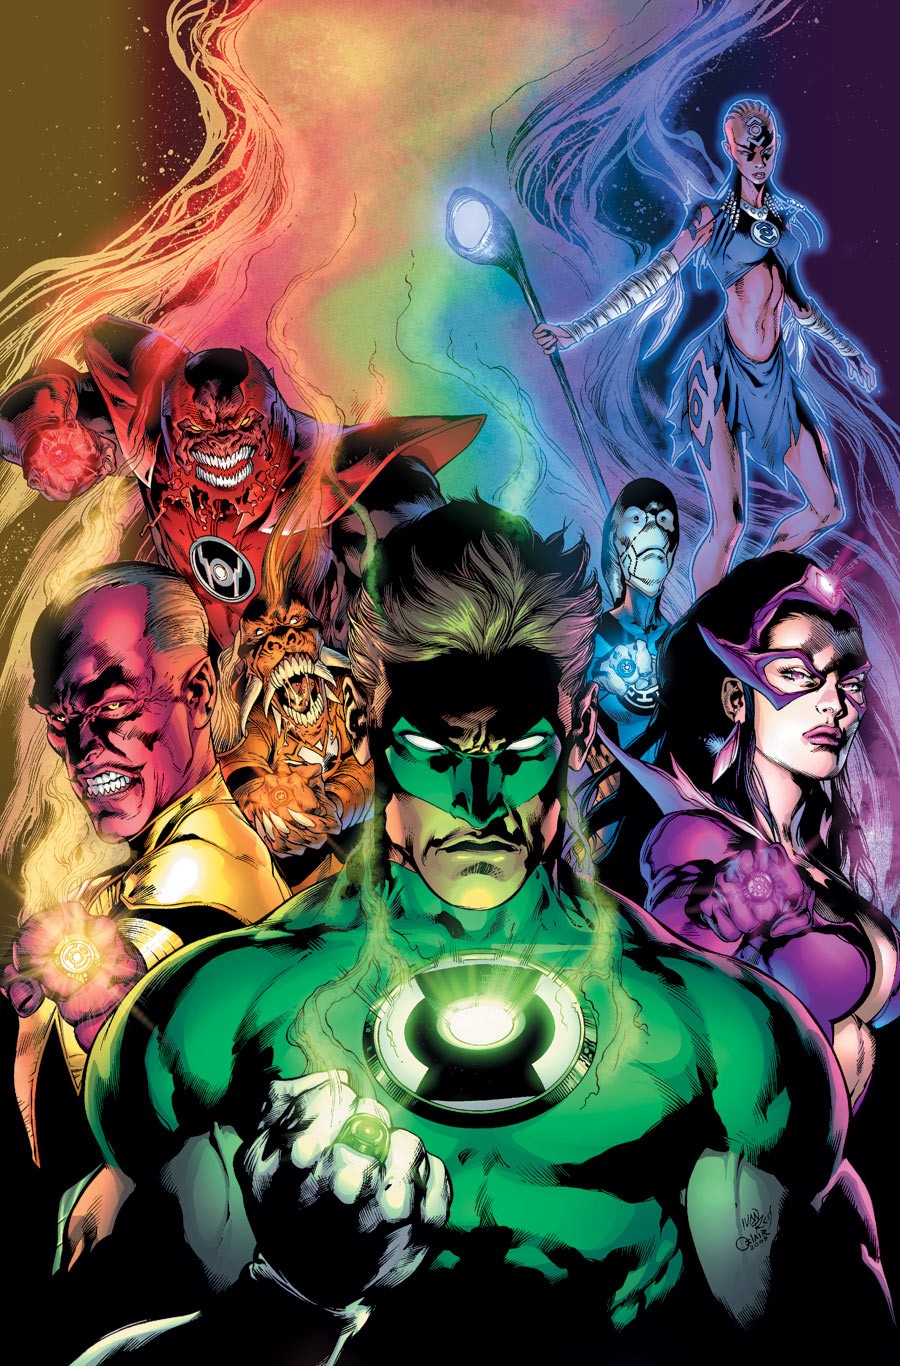 Green lantern ring comic - photo#16